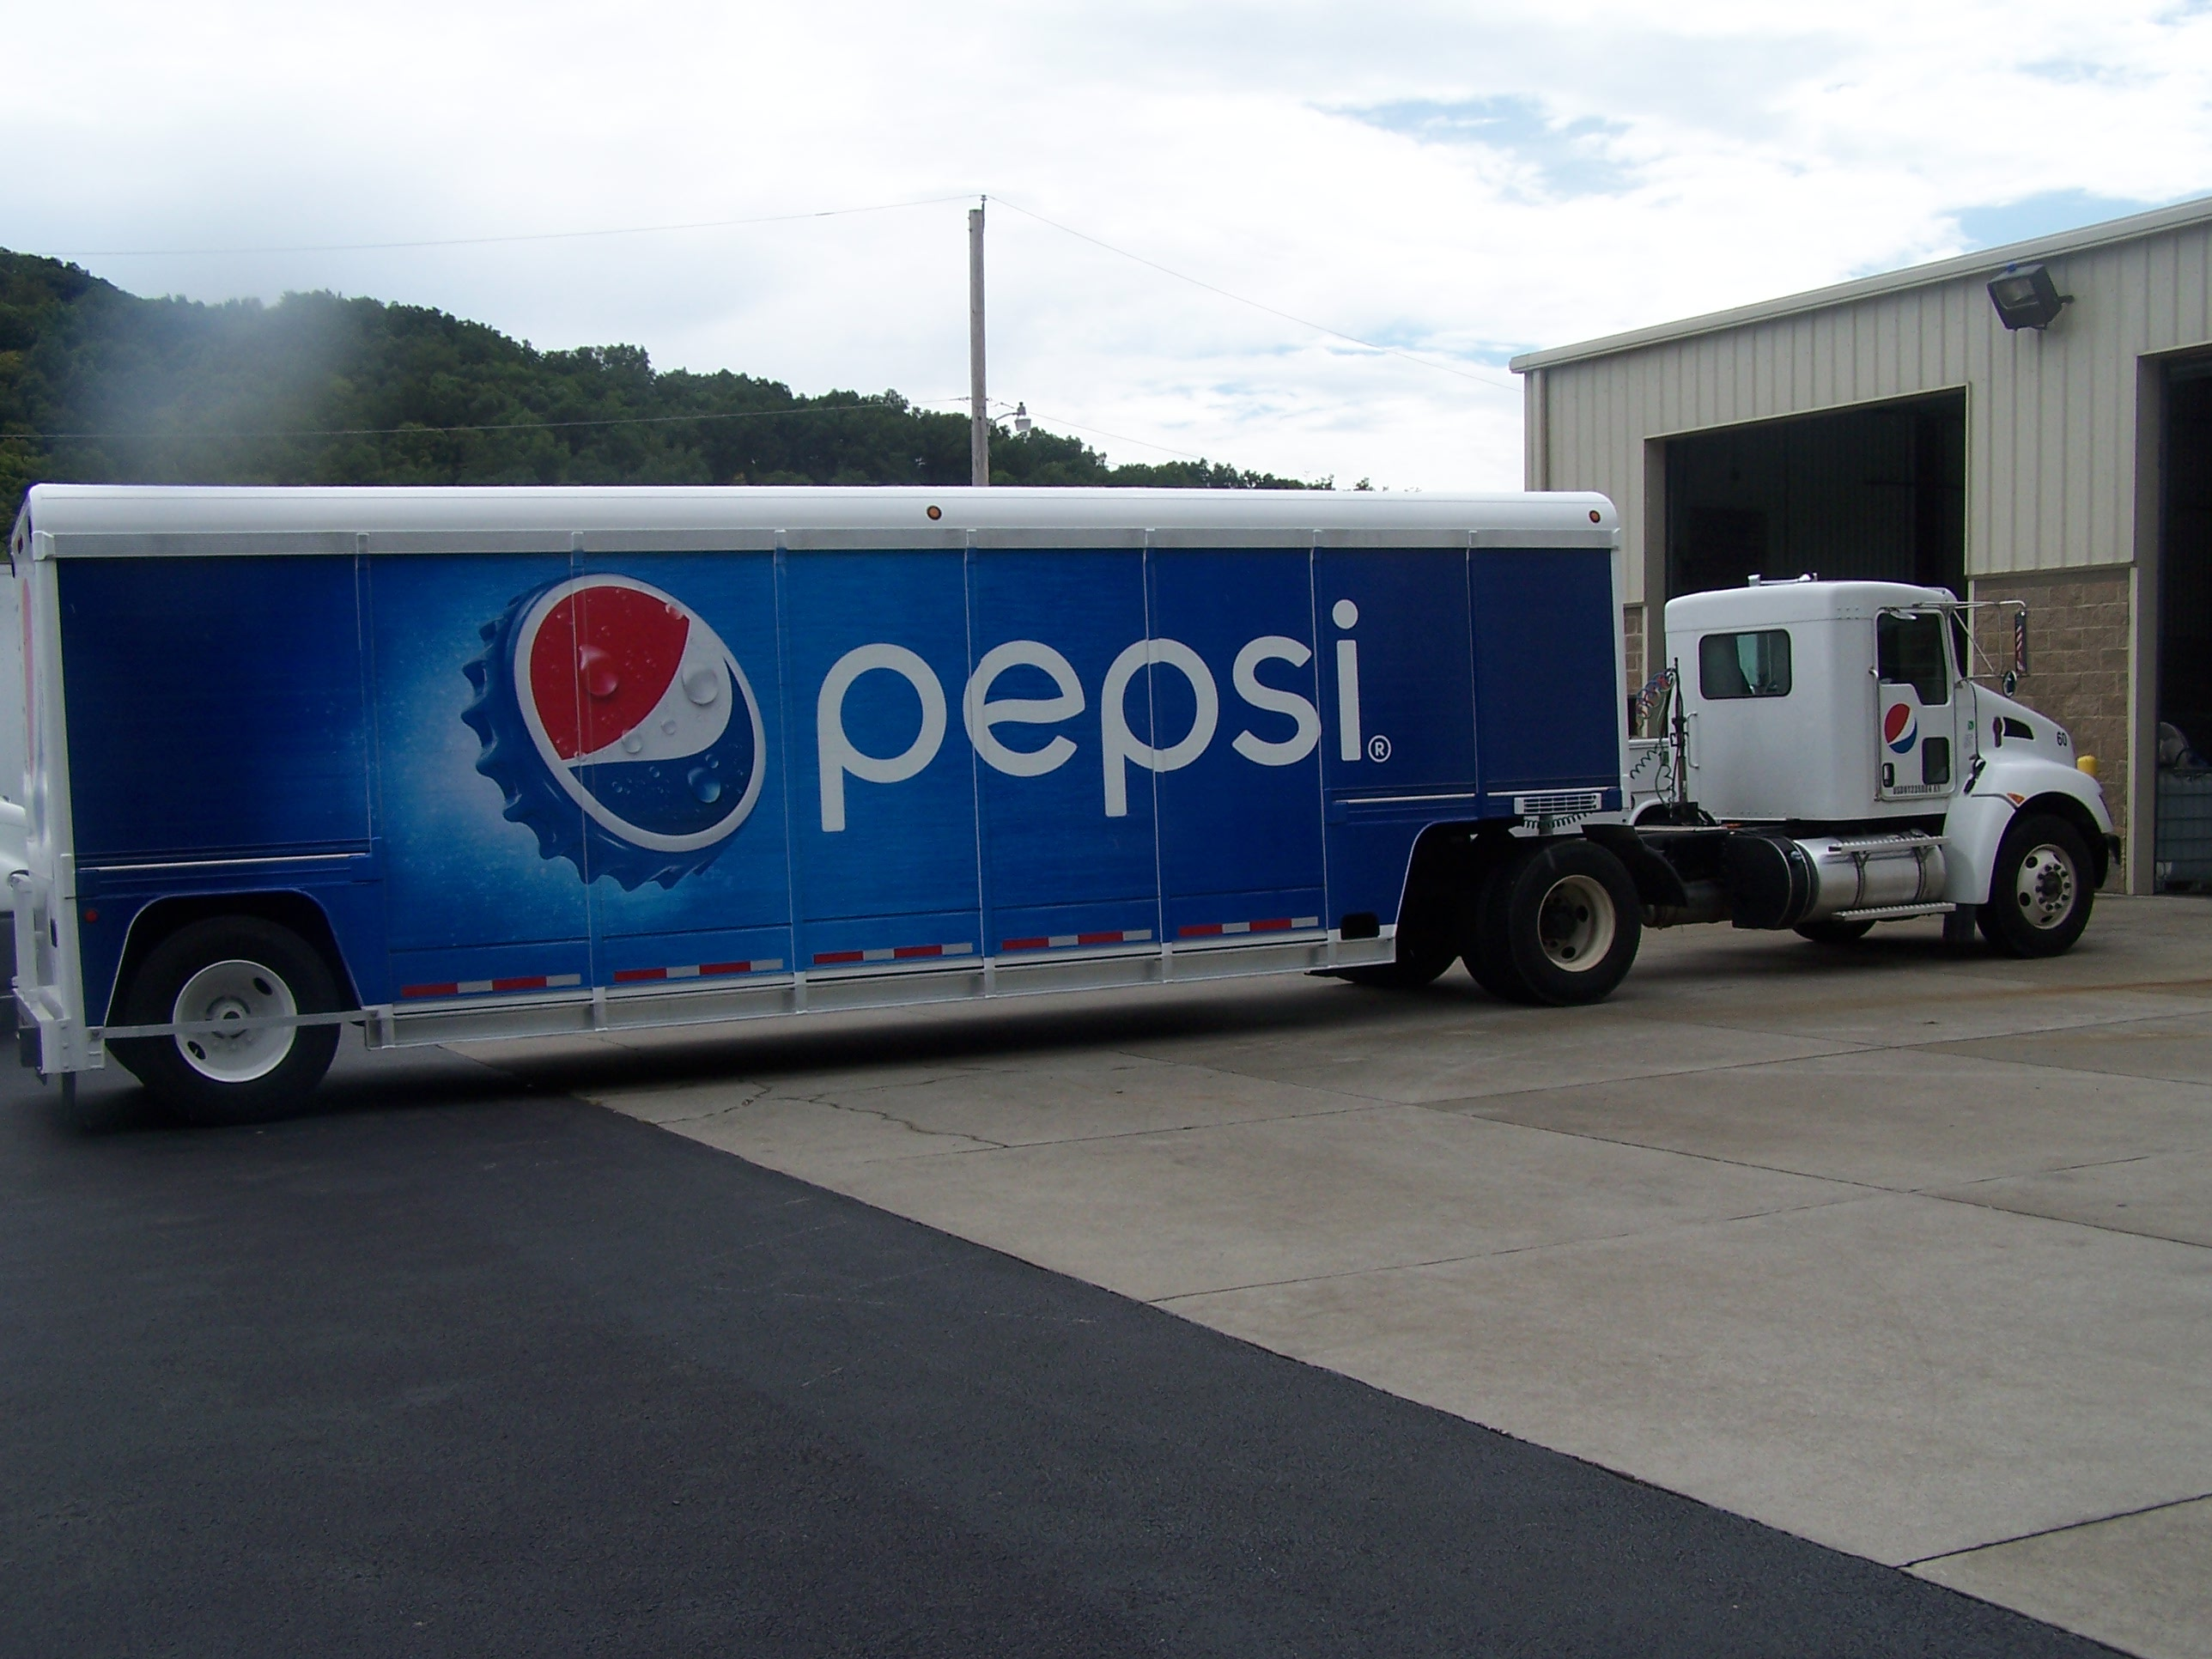 job descriptions | Pepsi Corbin